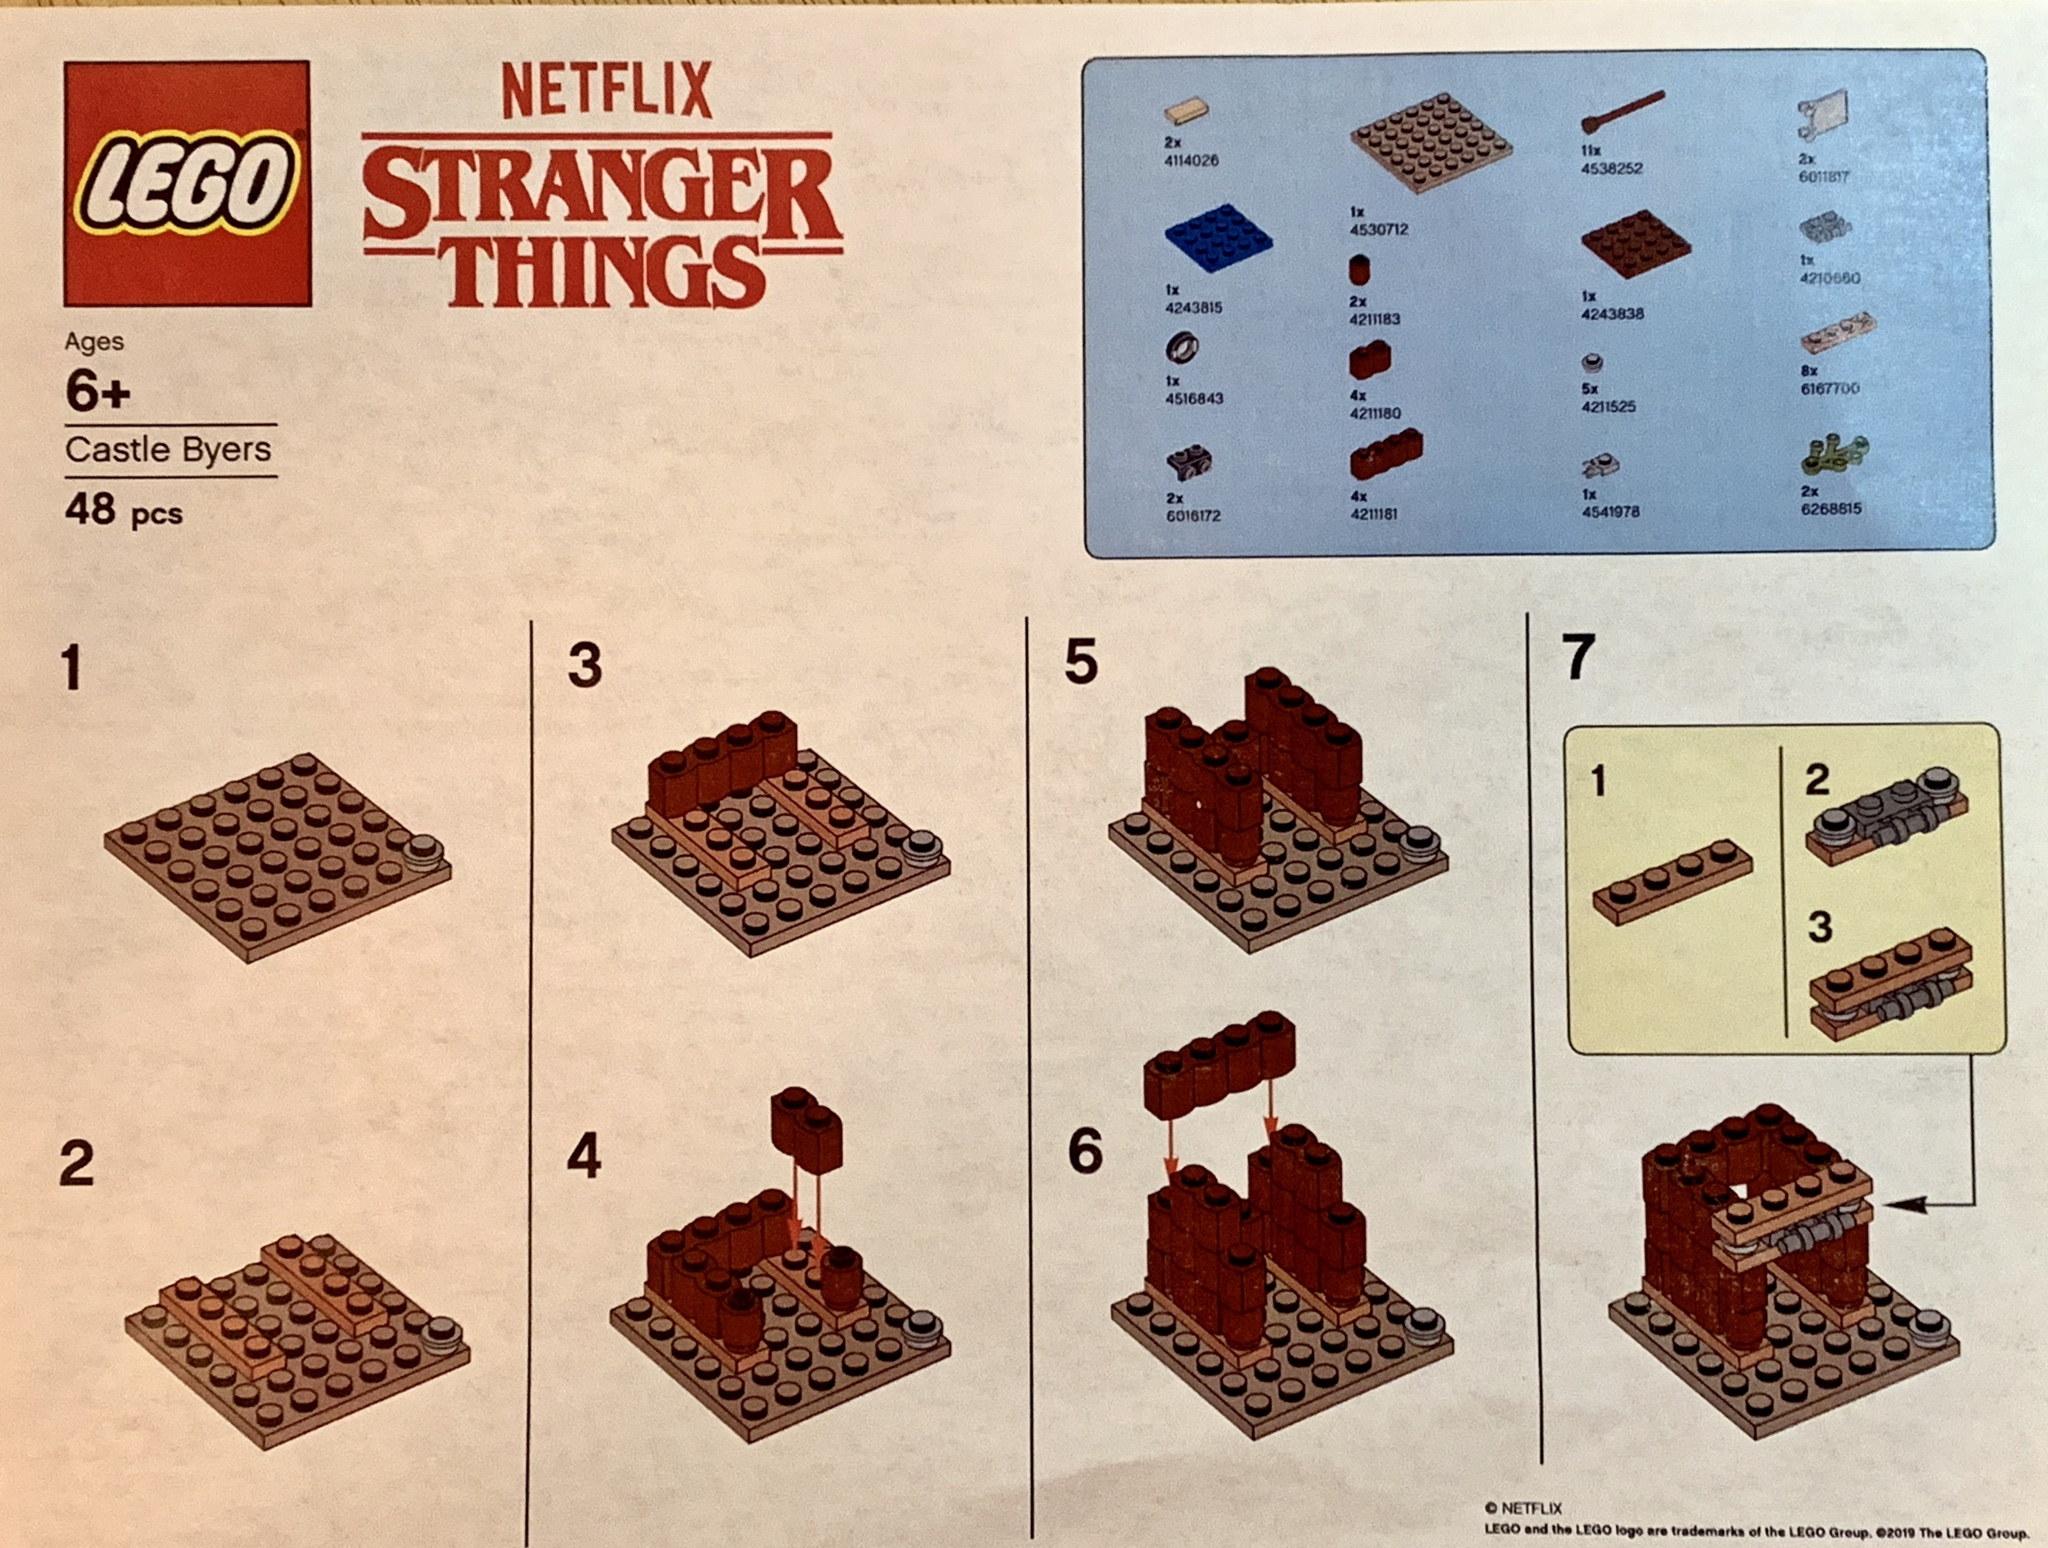 LEGO Stranger Things Castle Byers Building Instructions